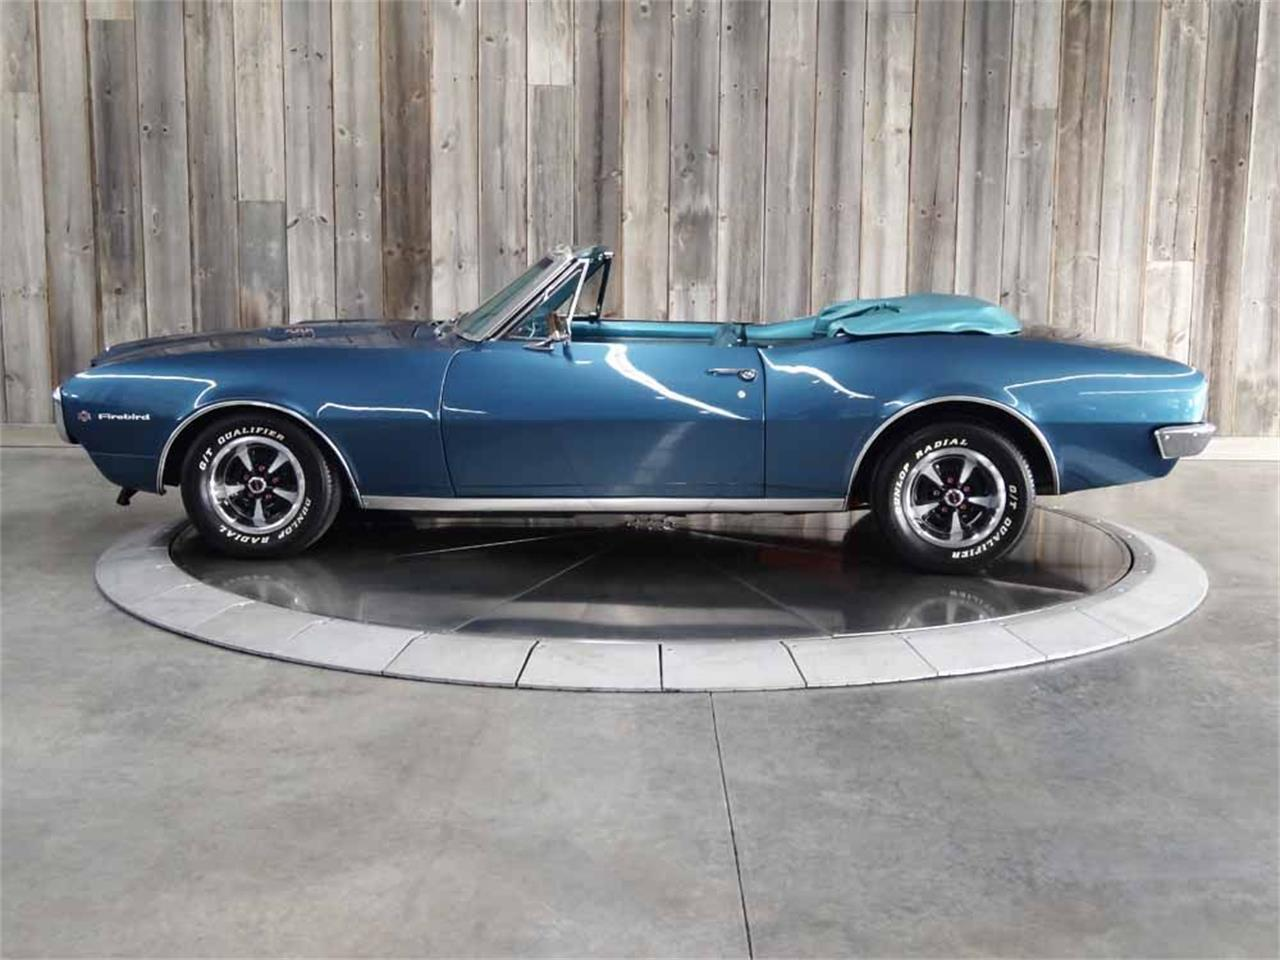 Large Picture of Classic 1967 Pontiac Firebird located in Iowa - $34,900.00 - P2F9